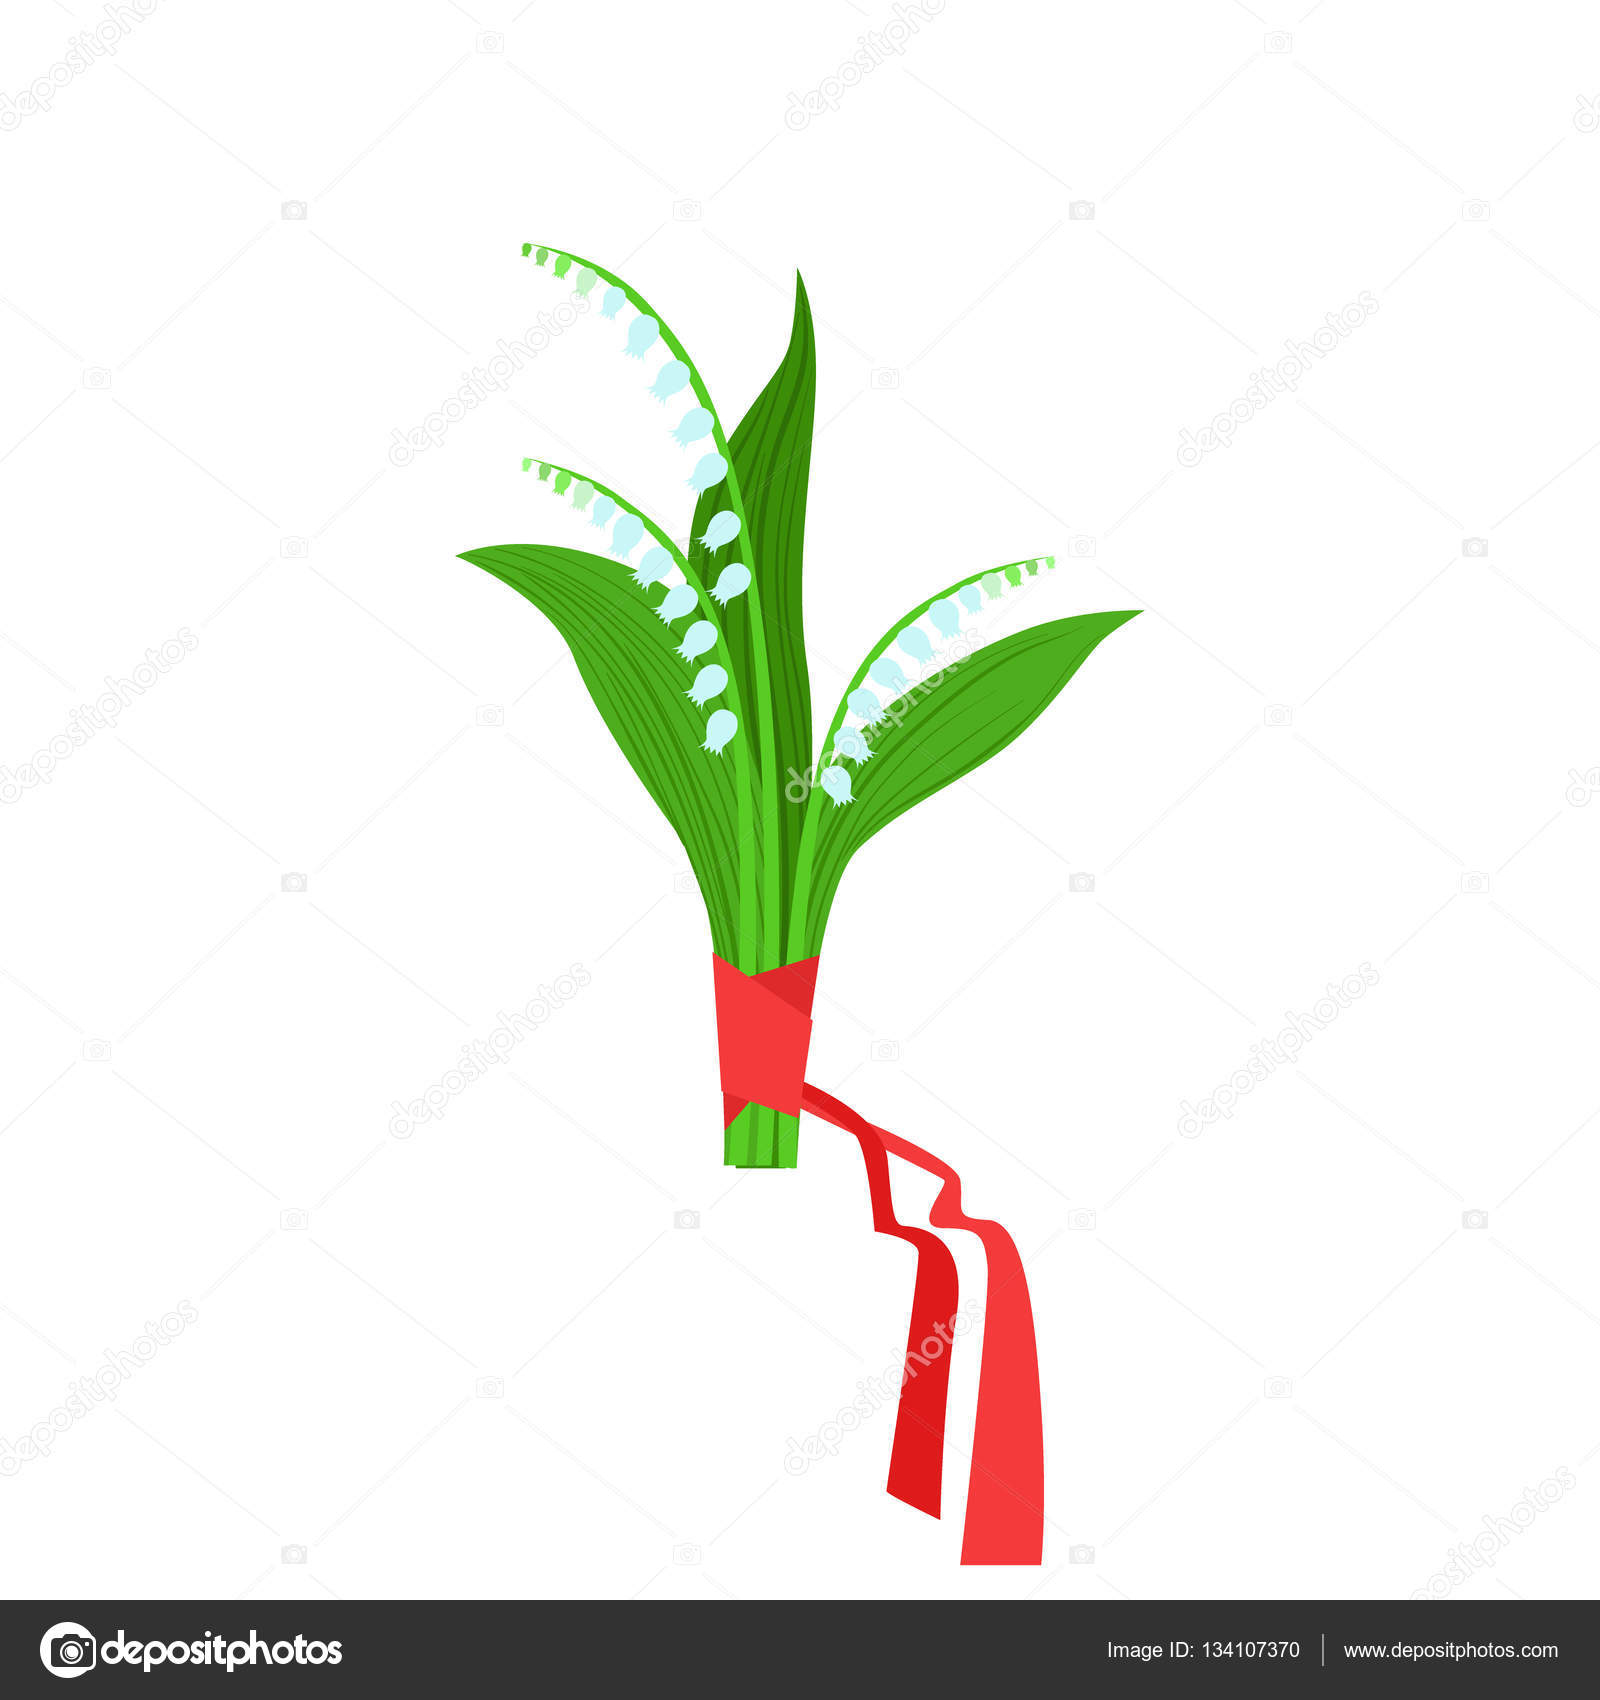 Lily of the valley flower bouquet tied with red ribbon flower shop lily of the valley flower bouquet tied with red ribbon flower shop decorative plants assortment item cartoon vector illustration izmirmasajfo